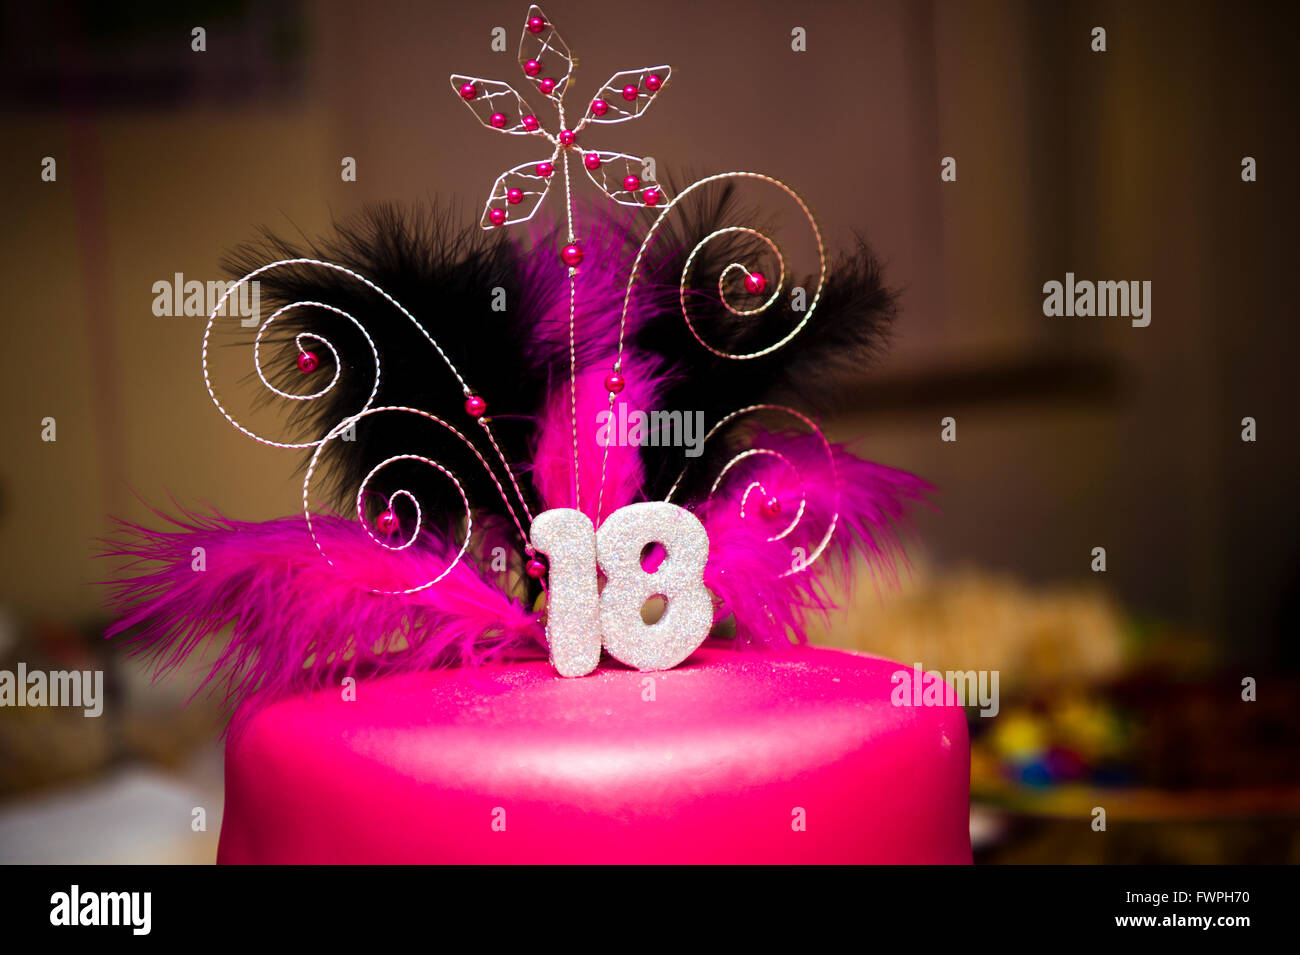 A teenage girl's 18th birthday party pink cake, UK - Stock Image